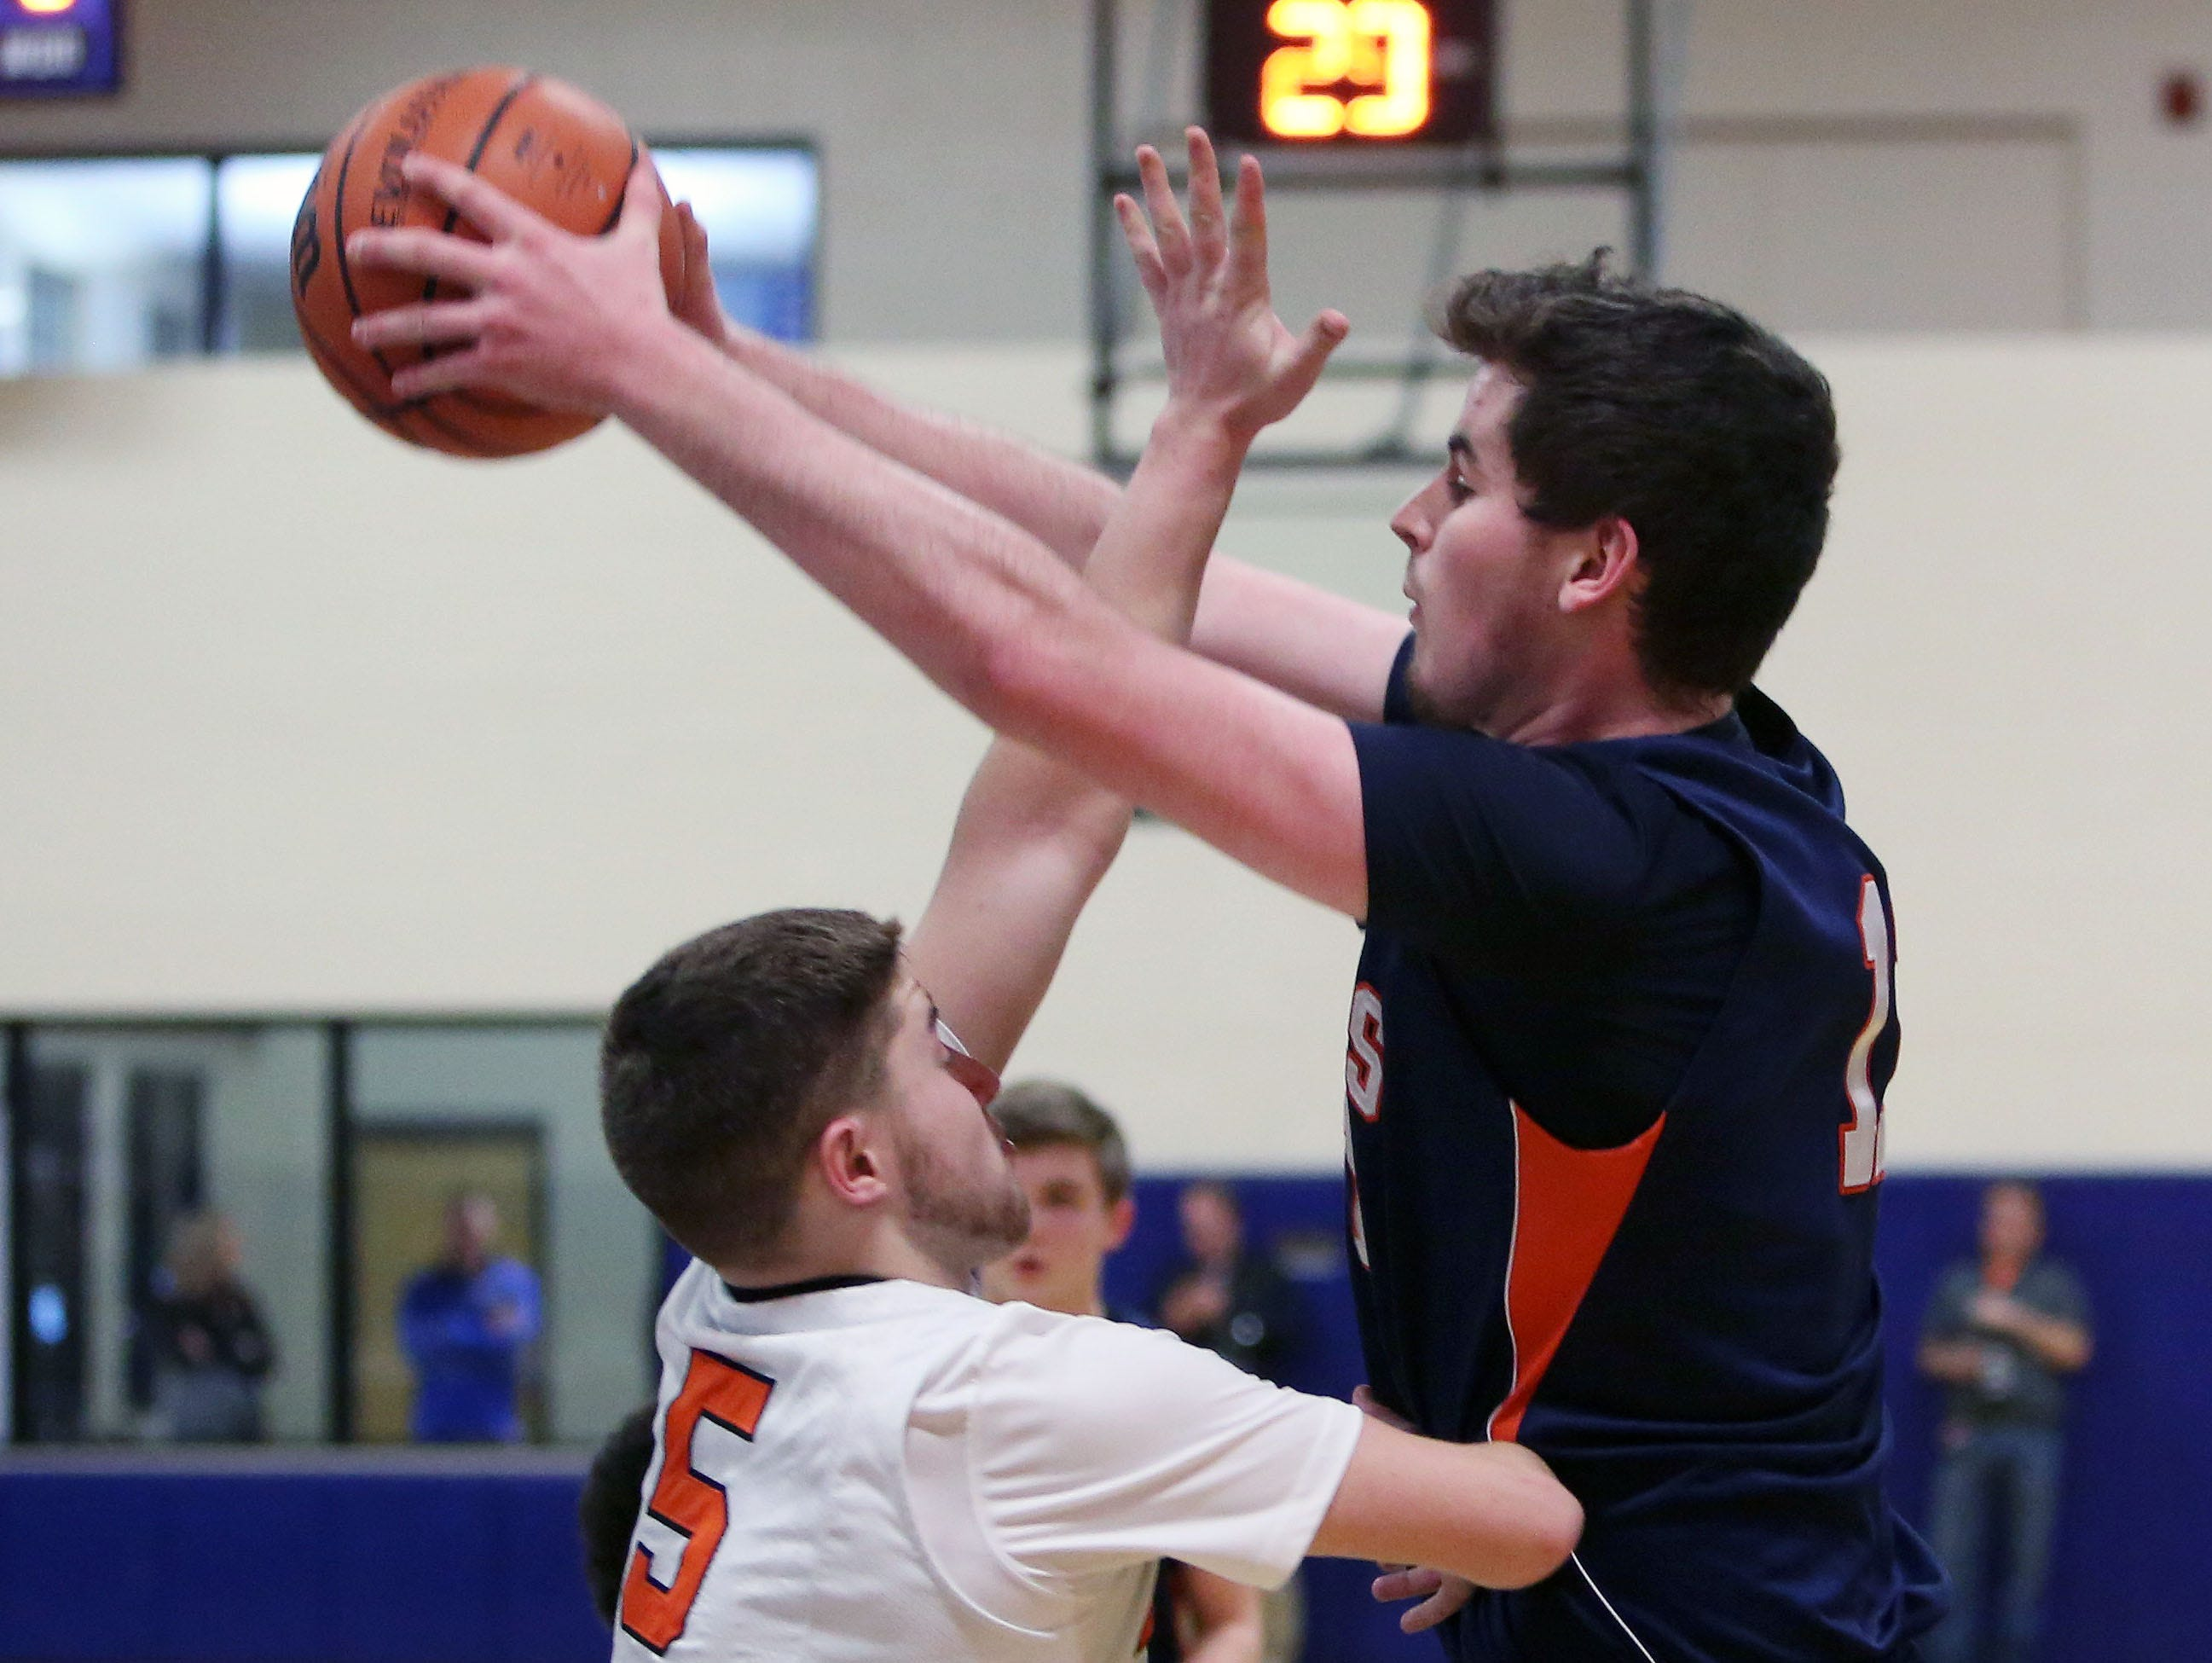 Briarcliff's Sean Crowley (11) has his path to the basket blocked by Marlboro's Nicholas Mongelli (5) during first half action in the boys basketball regional semifinal at Mount Saint Mary College in Newburgh March 2, 2016. Marlboro won the game 57-49.